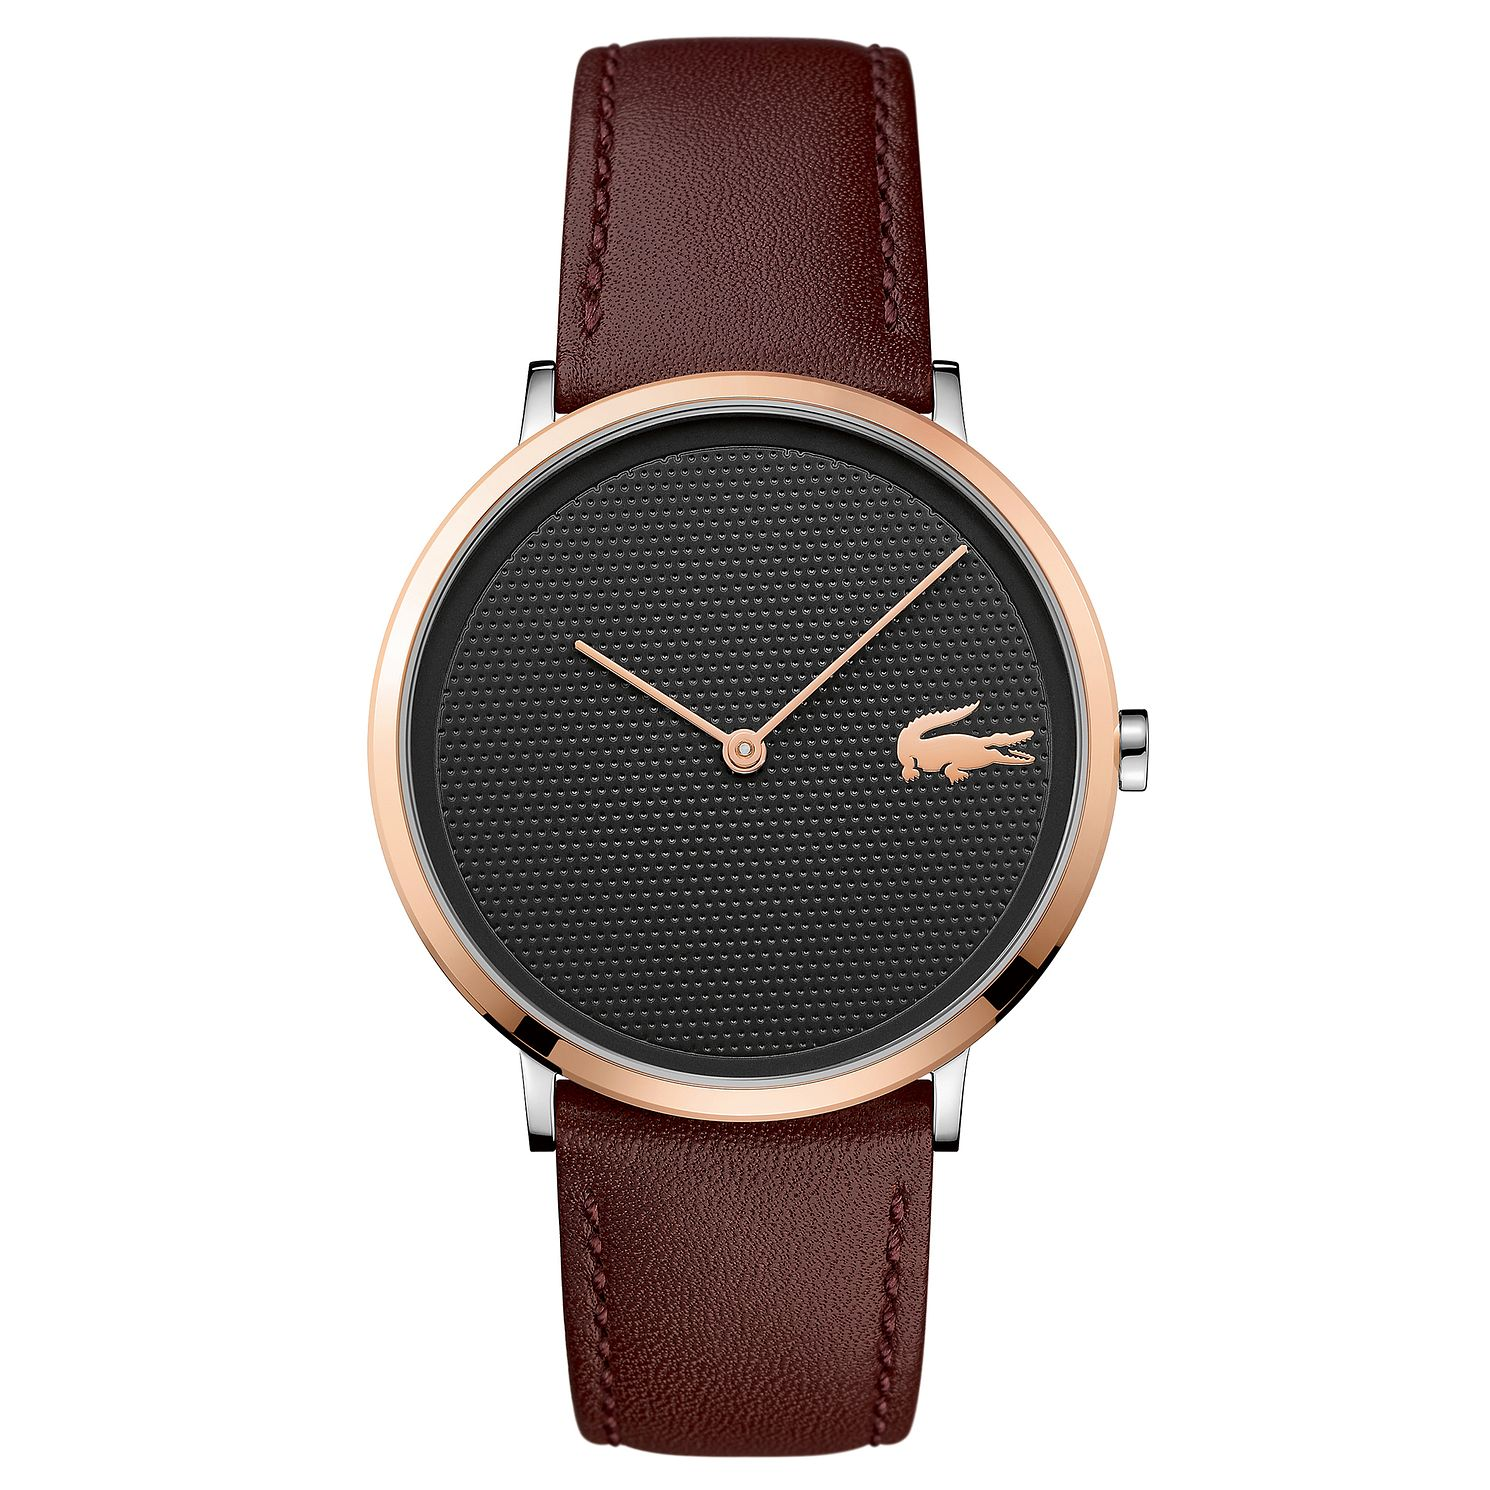 Lacoste Moon Men's Brown Leather Strap Watch - Product number 4460049